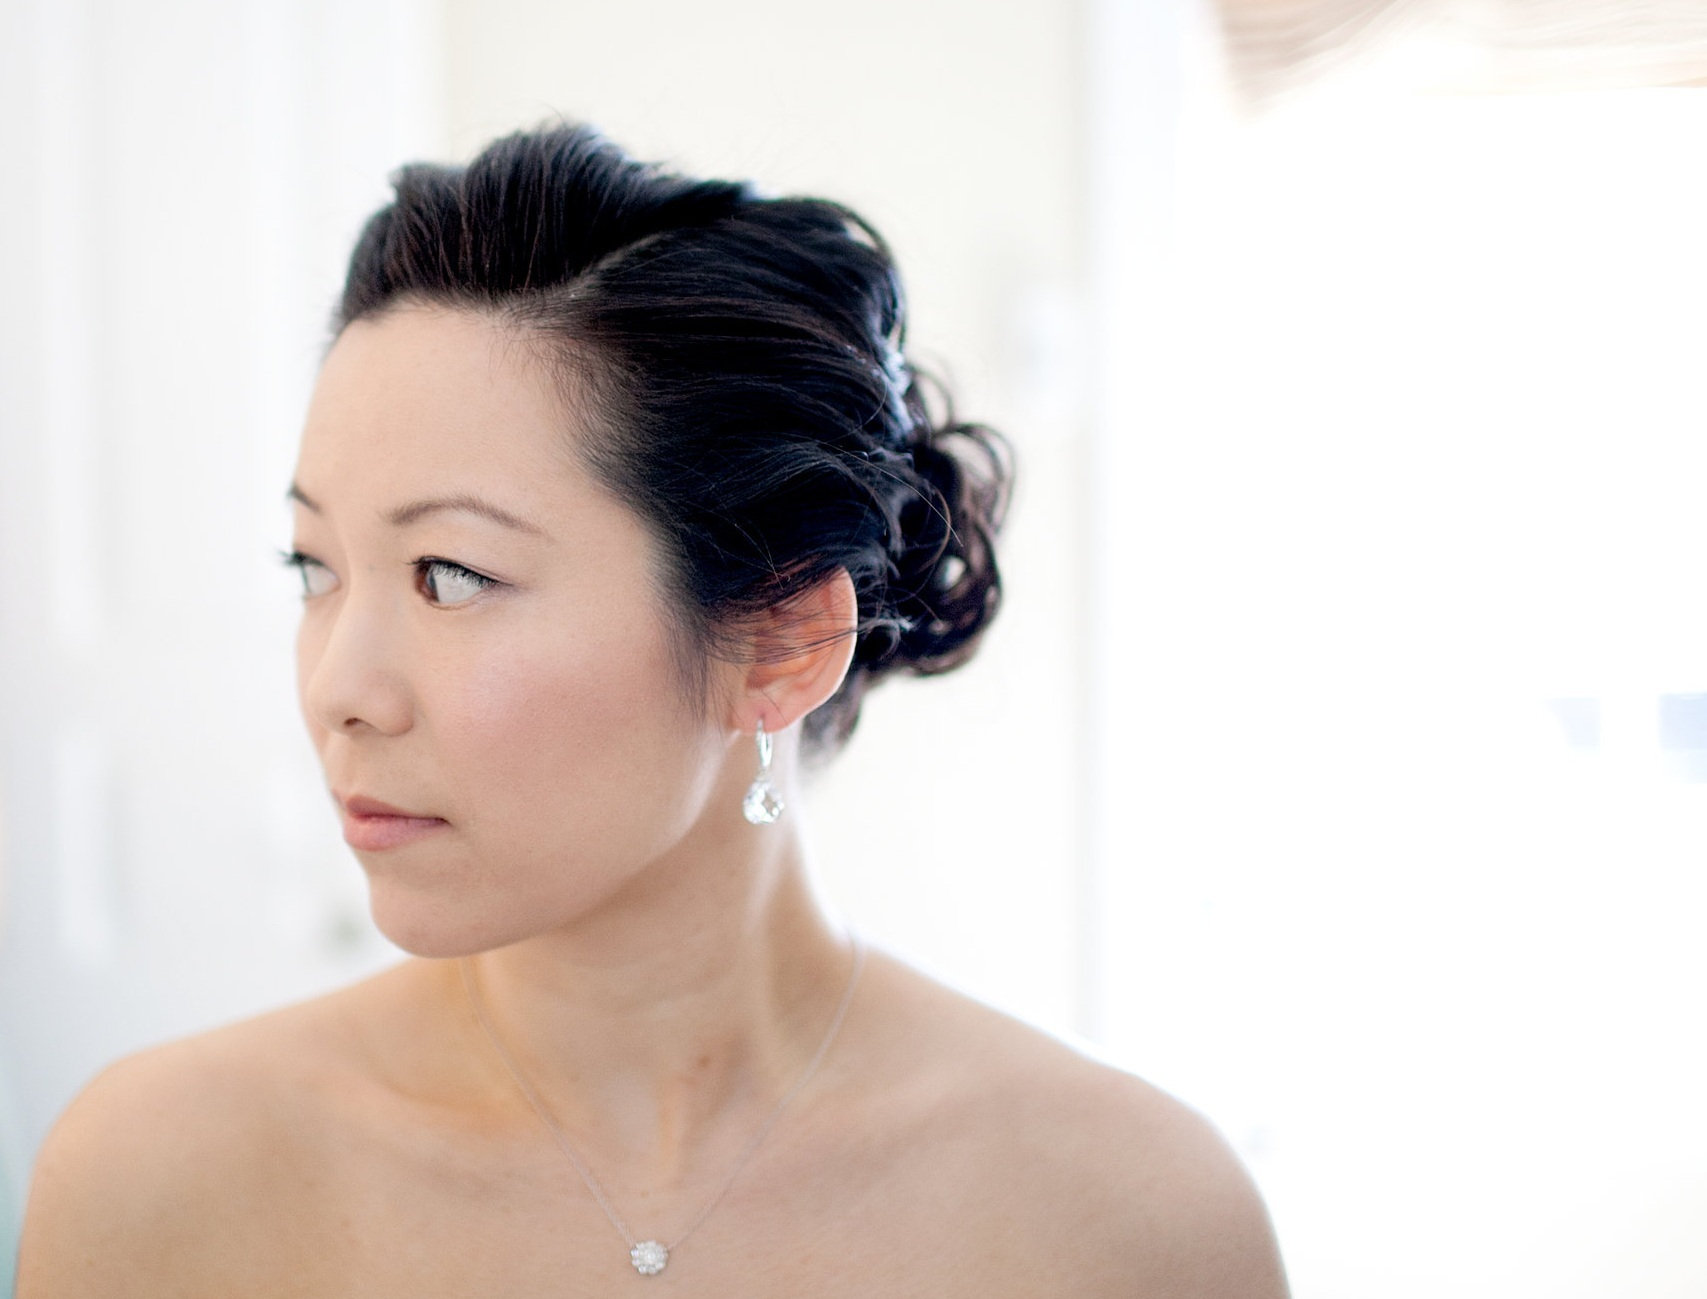 Less is more - Bridal hair and makeup is an important element of your perfect wedding day look, much like your wedding dress. Your hair and makeup should not compete with other details, it should be complimentary.